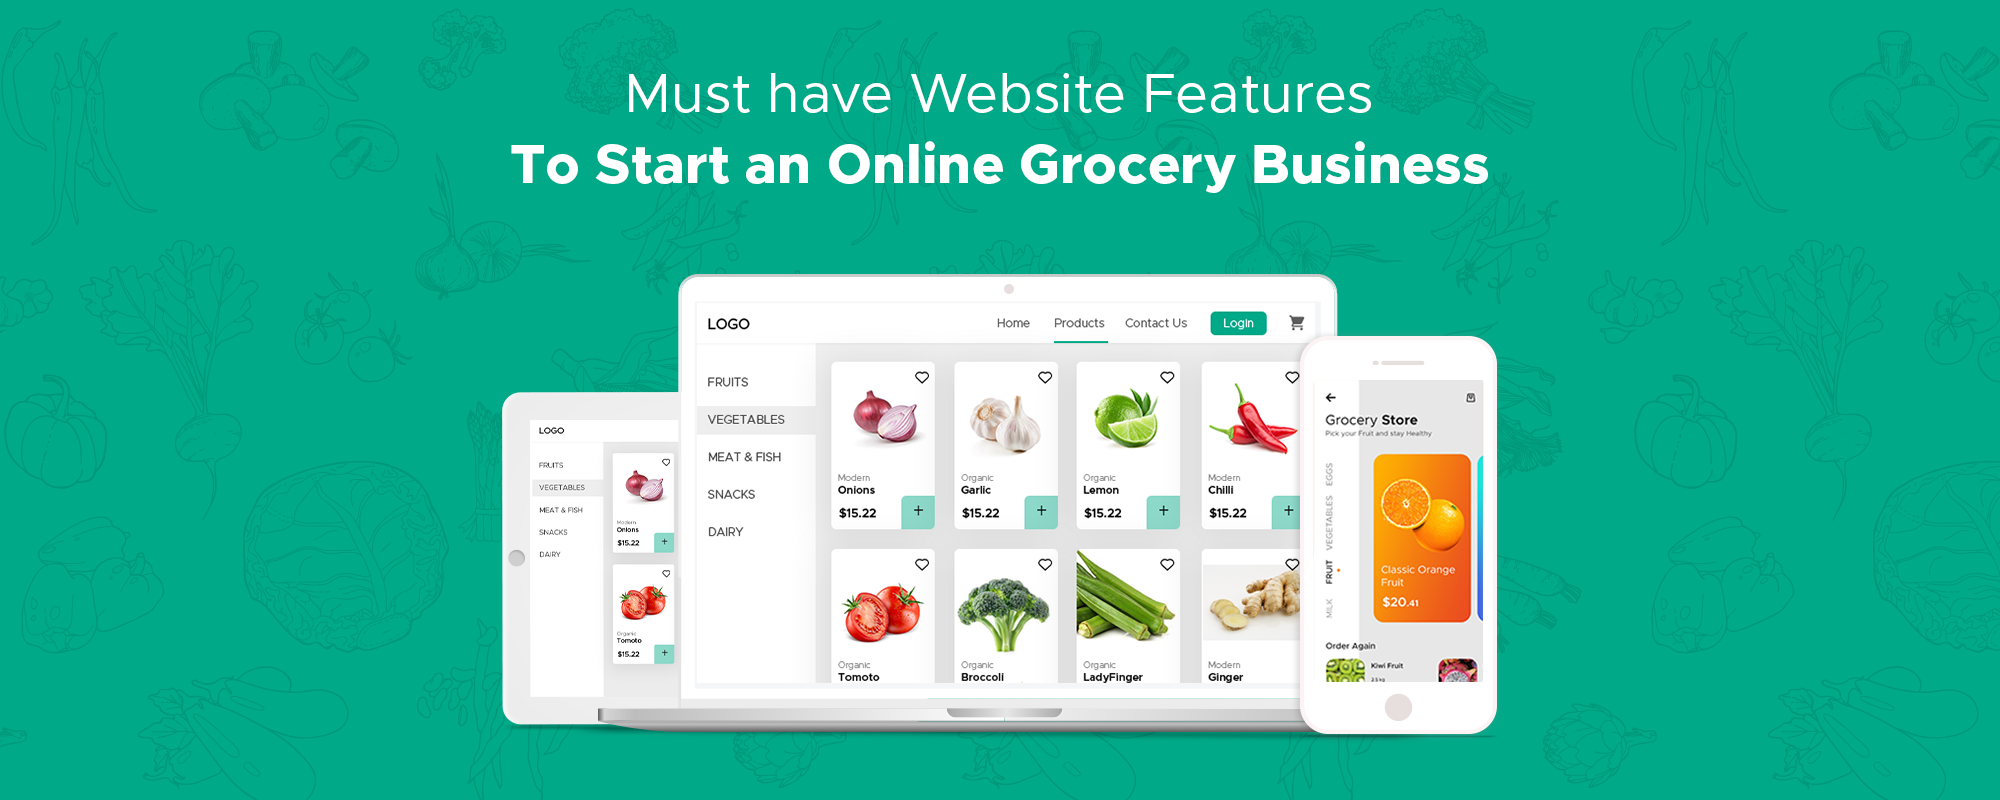 Launch Your Online Grocery Store – Business & Revenue Model, Features, and Key Players